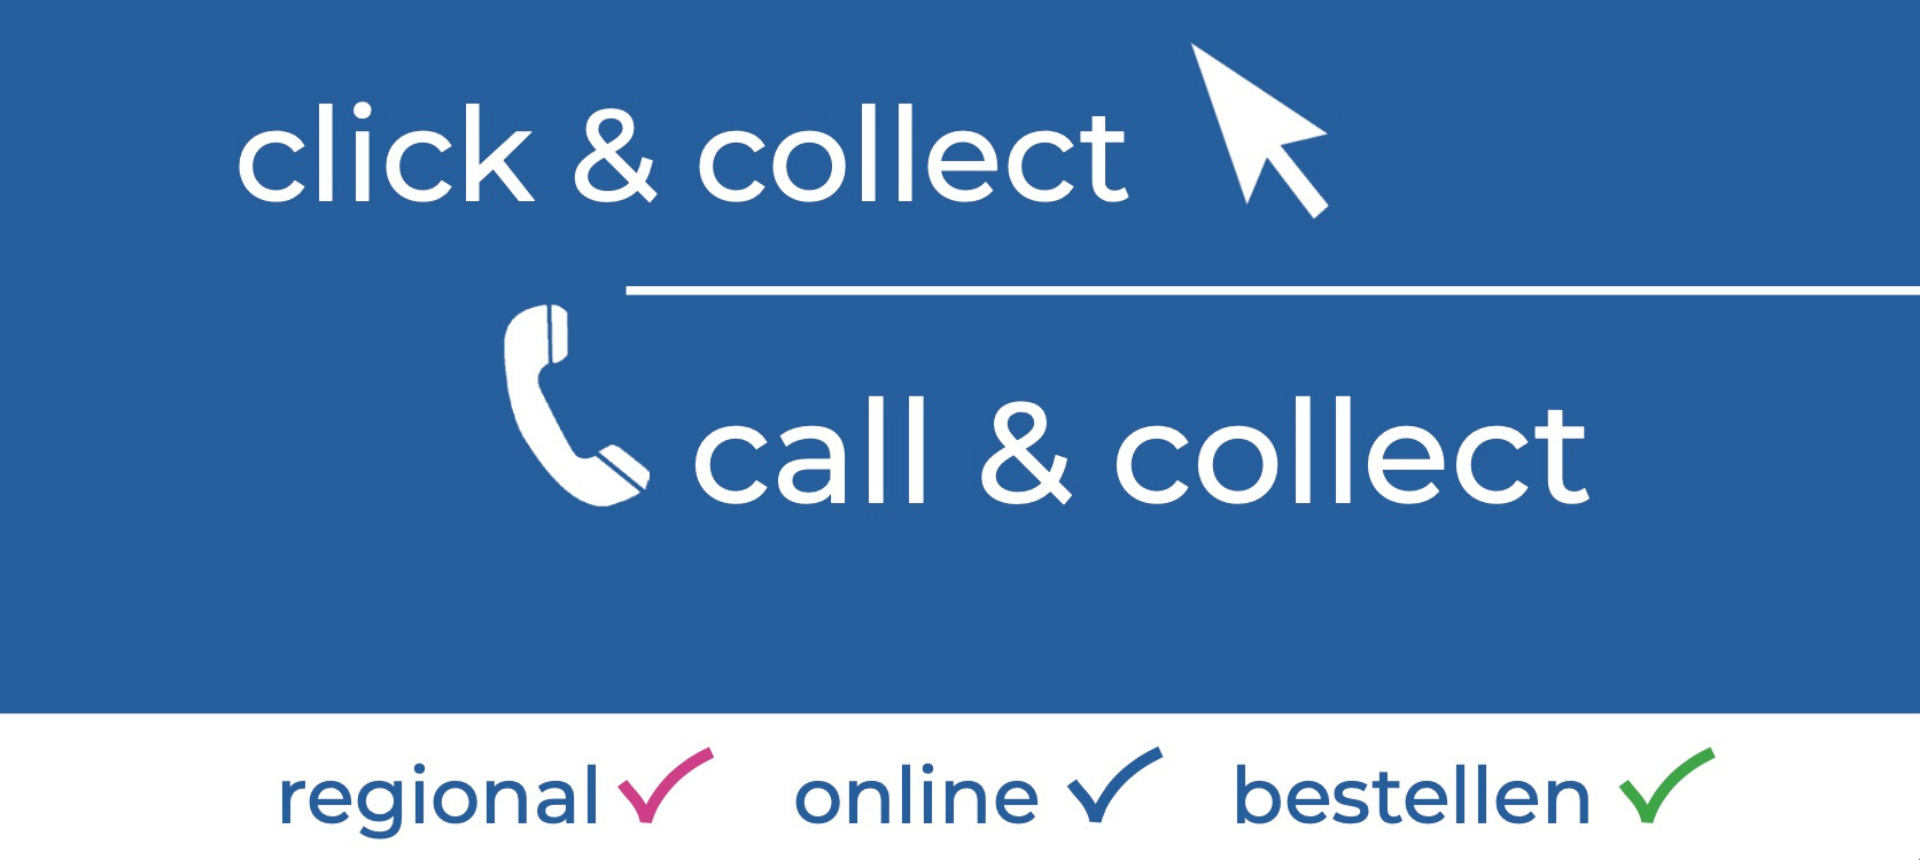 Click (call) & collect in Rottenburg a. d. Laaber